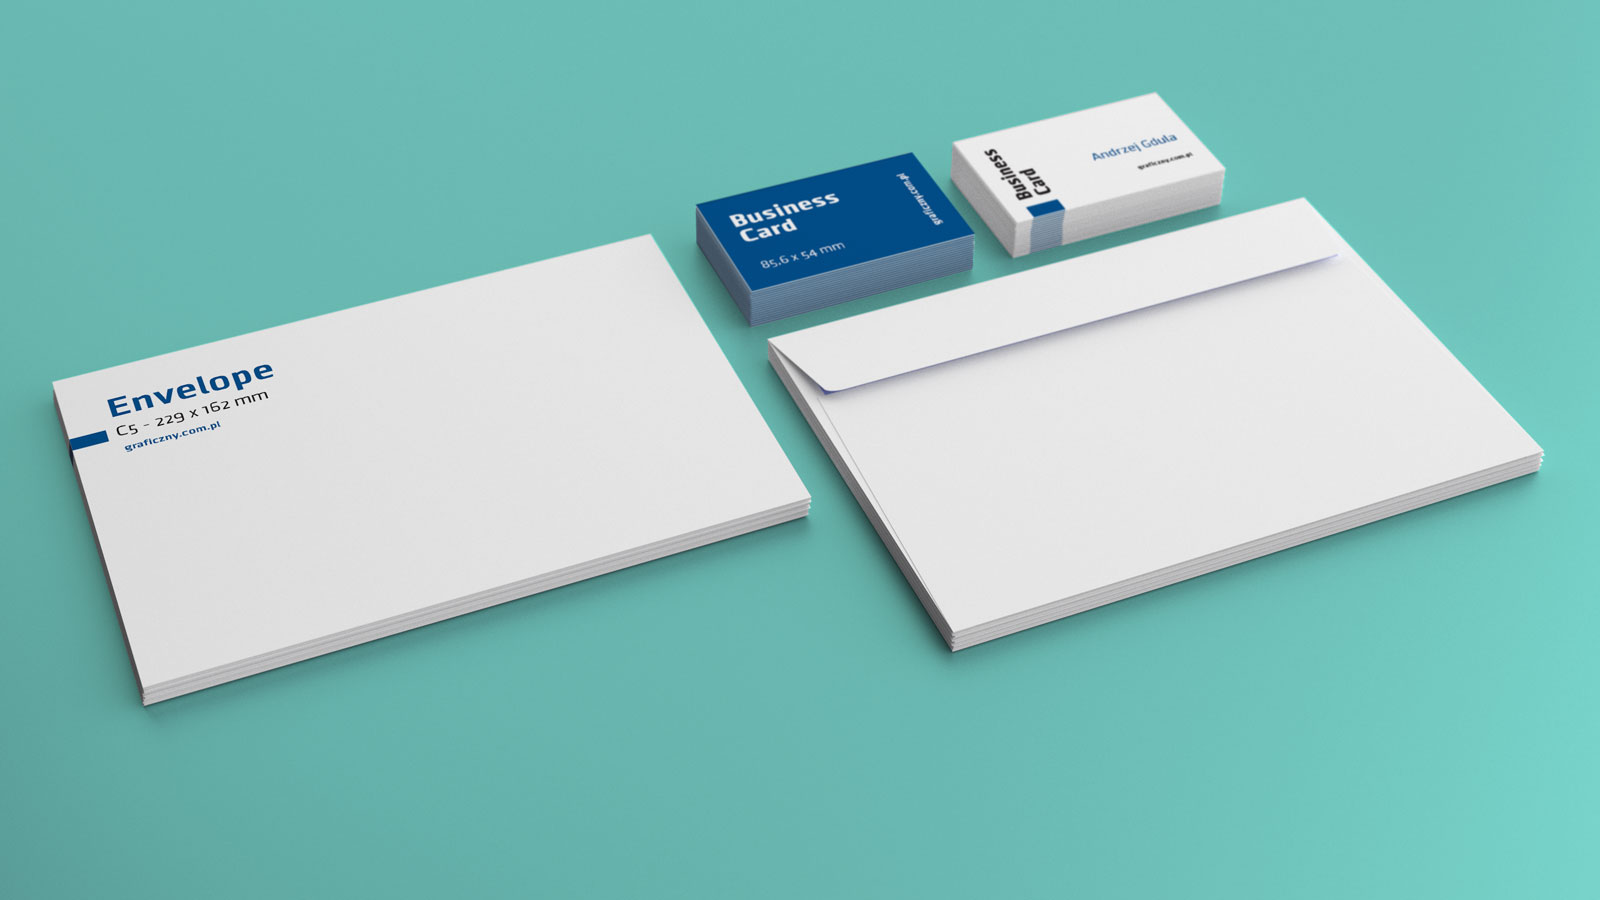 ... Free Envelop Business Card Mockup PSD ...